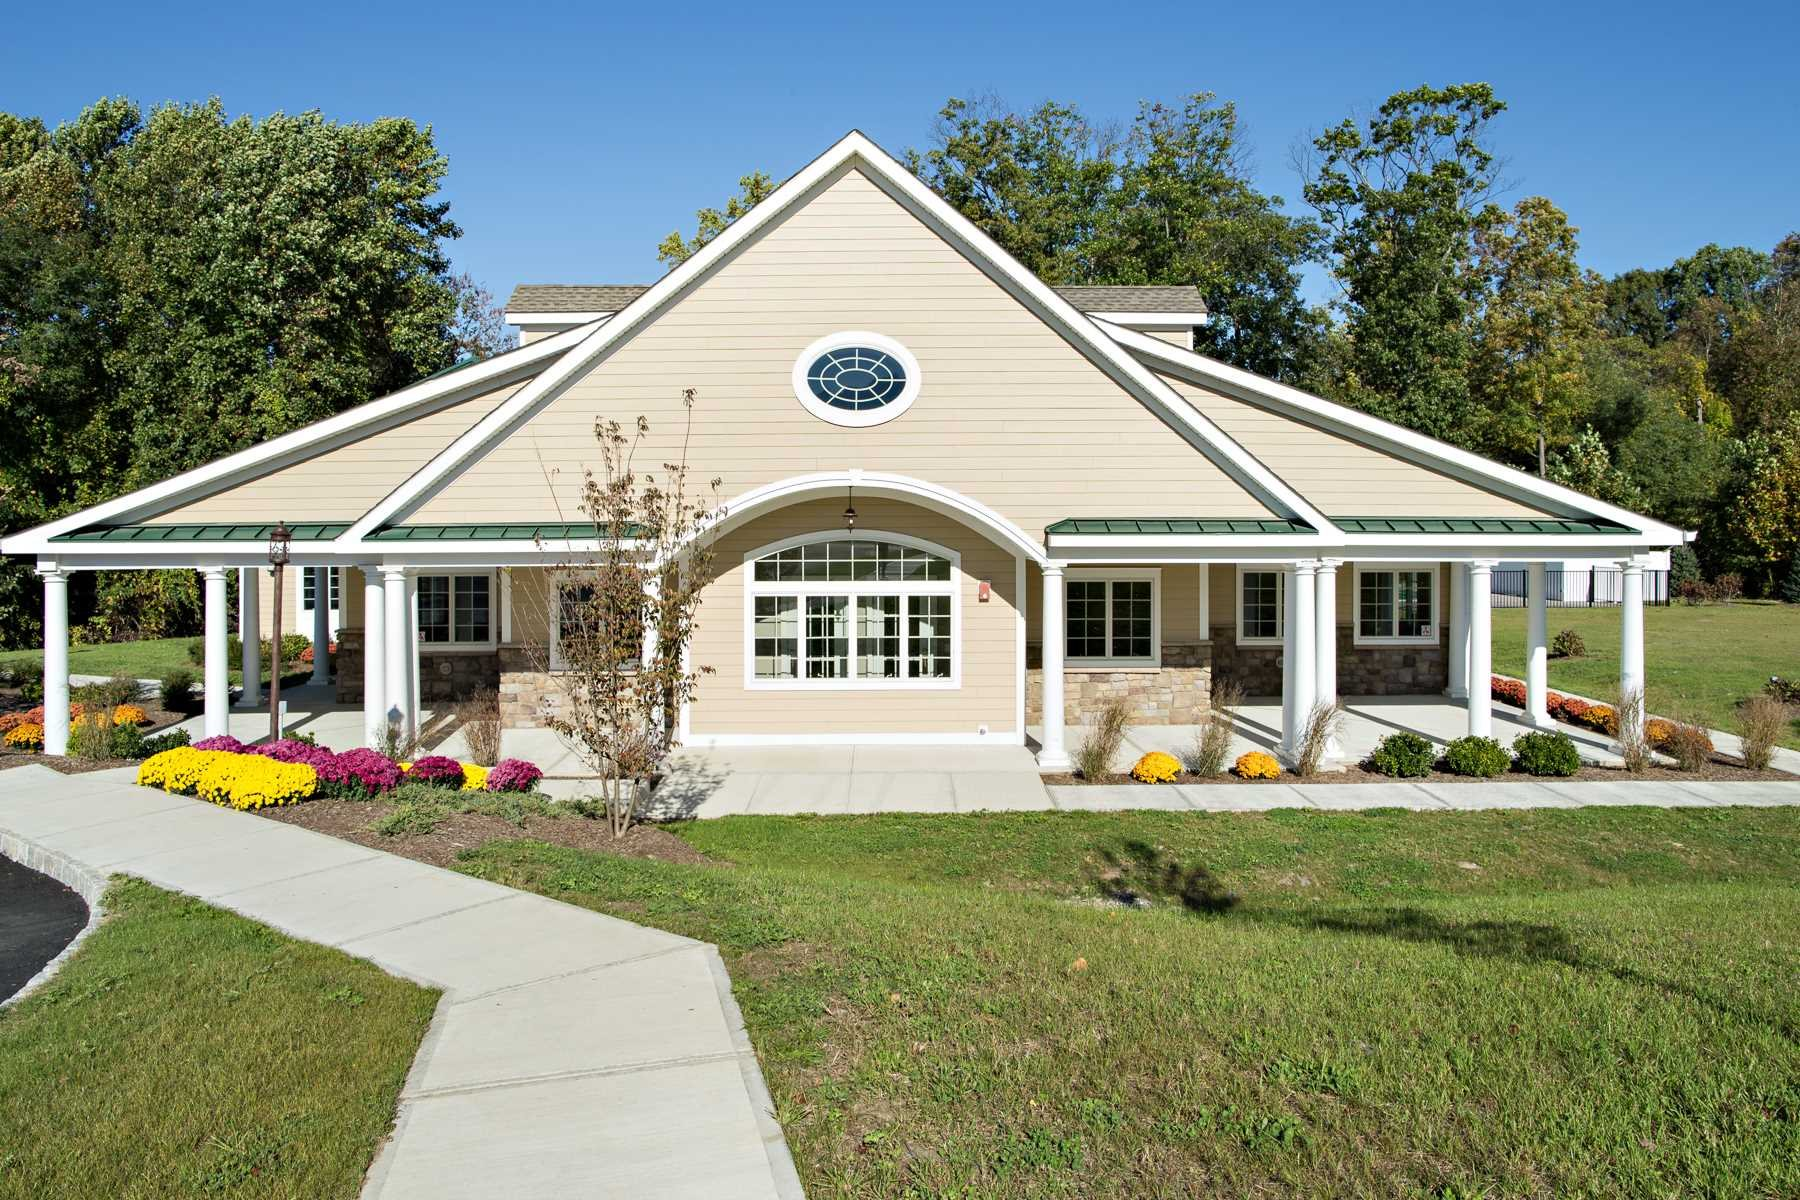 rosendale divorced singles Roslindale house located in roslindale ma with service to surrounding cities, is an independent living facility call (617) 327-1503 to get in touch with the team.